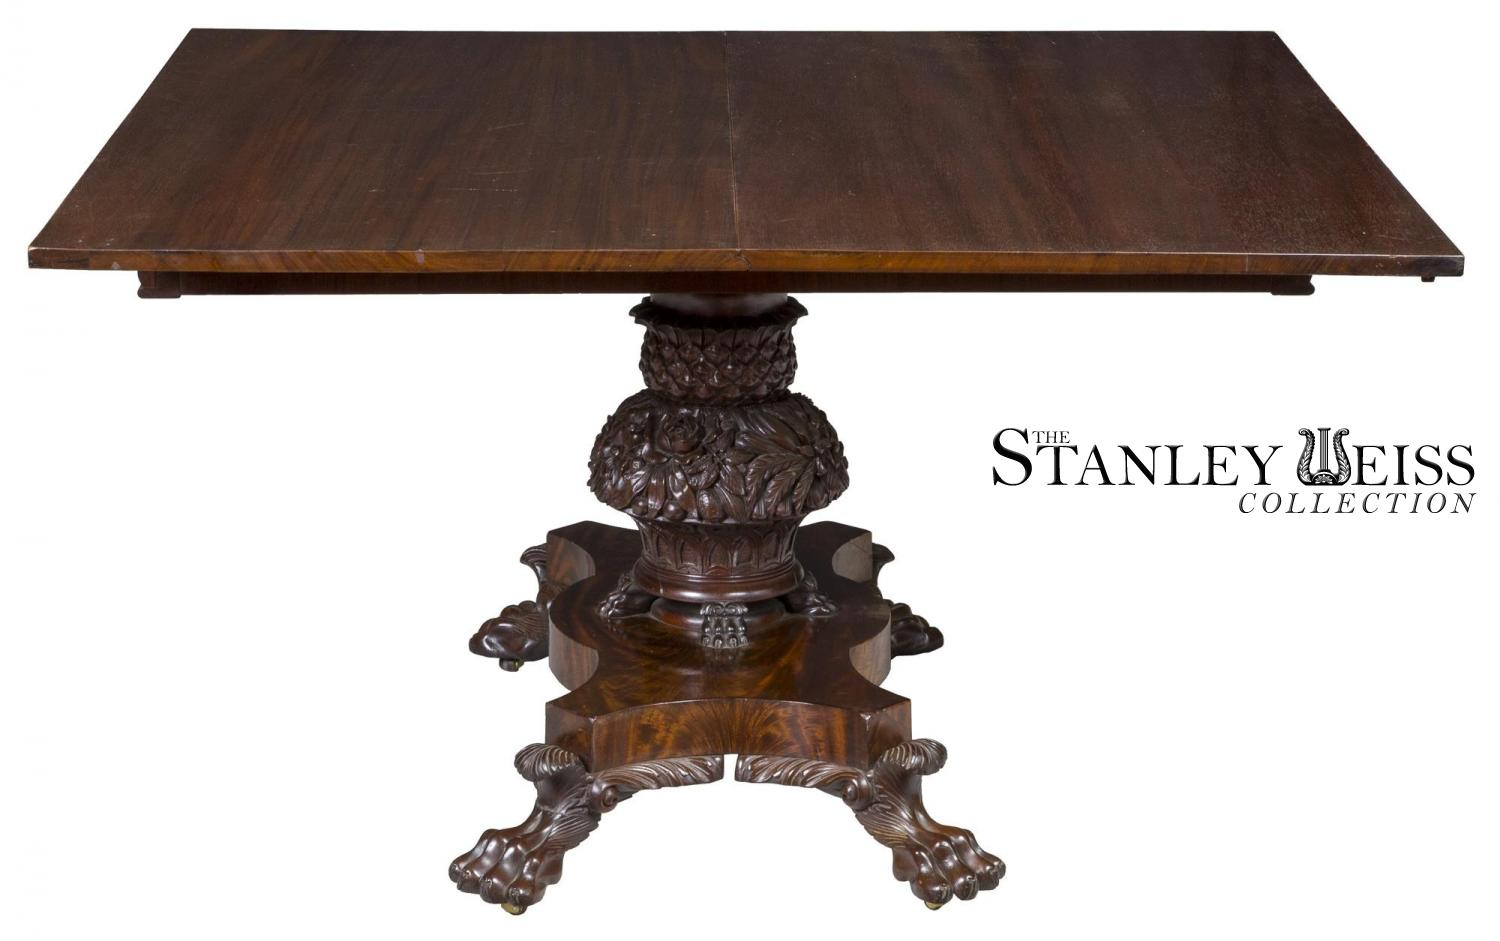 A Monumental Pedestal Classical Mahogany Dining Room Table